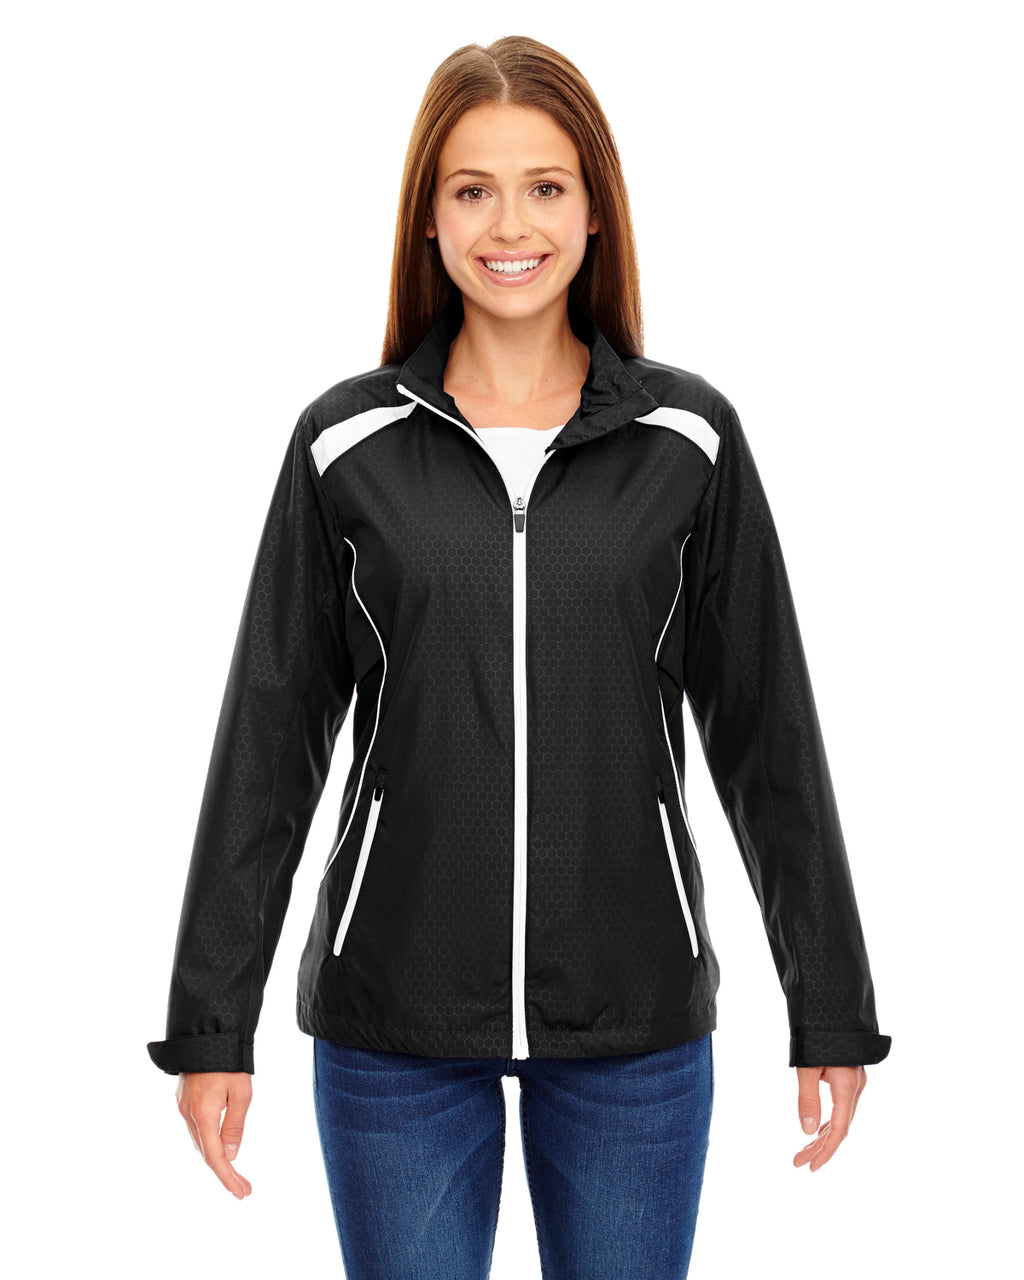 78188 - North End Ladies' Tempo Lightweight Recycled Polyester Jacket with Embossed Print